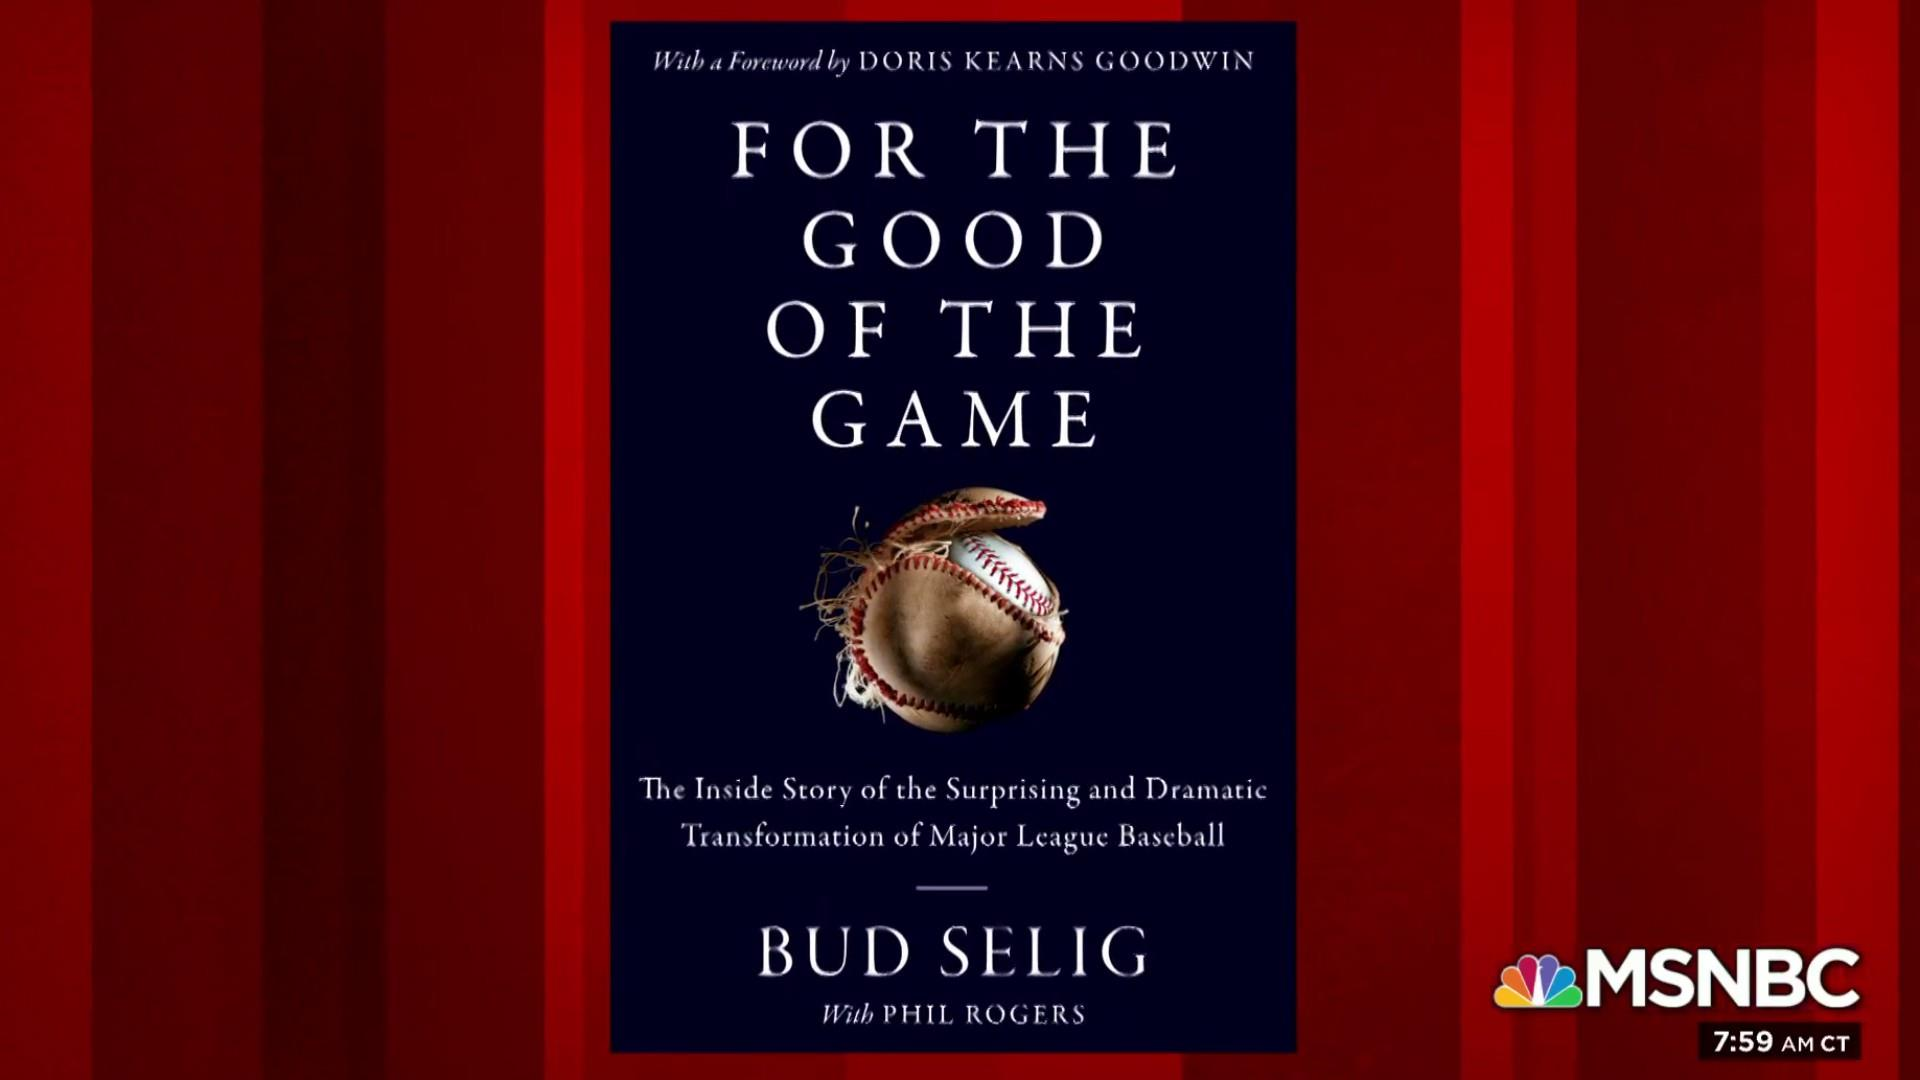 Bud Selig reflects on Barry Bonds and Hank Aaron